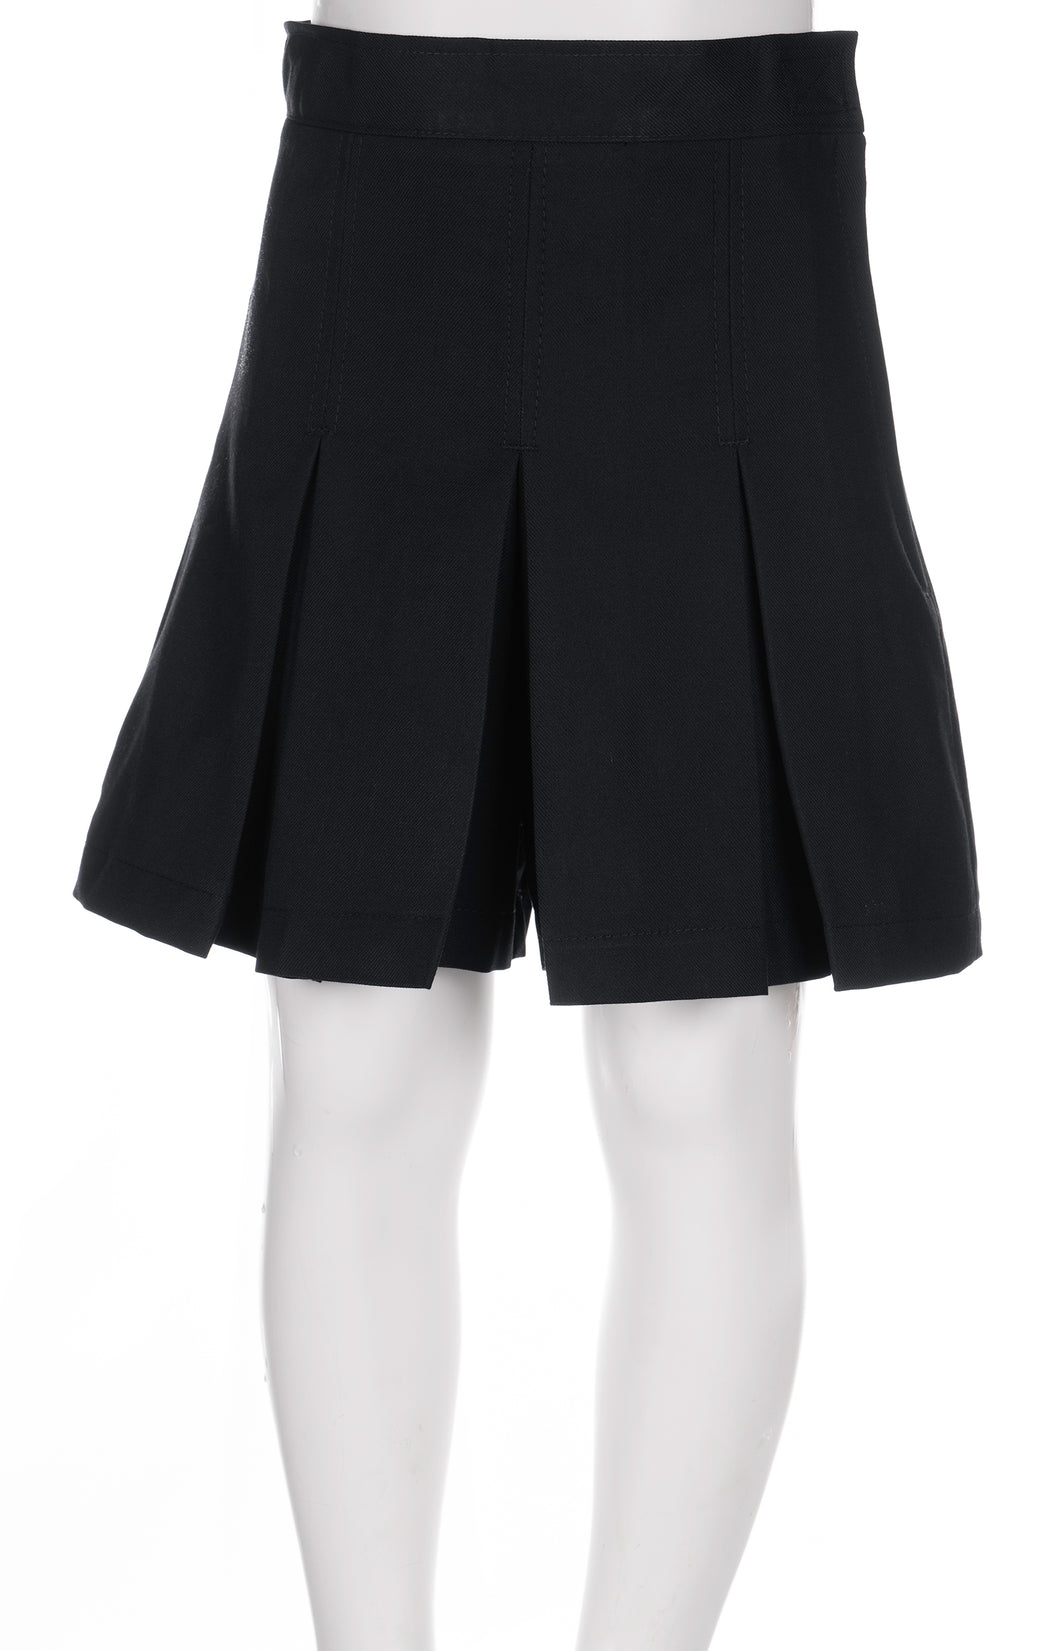 Silverdale Primary School - Girls Culottes Black